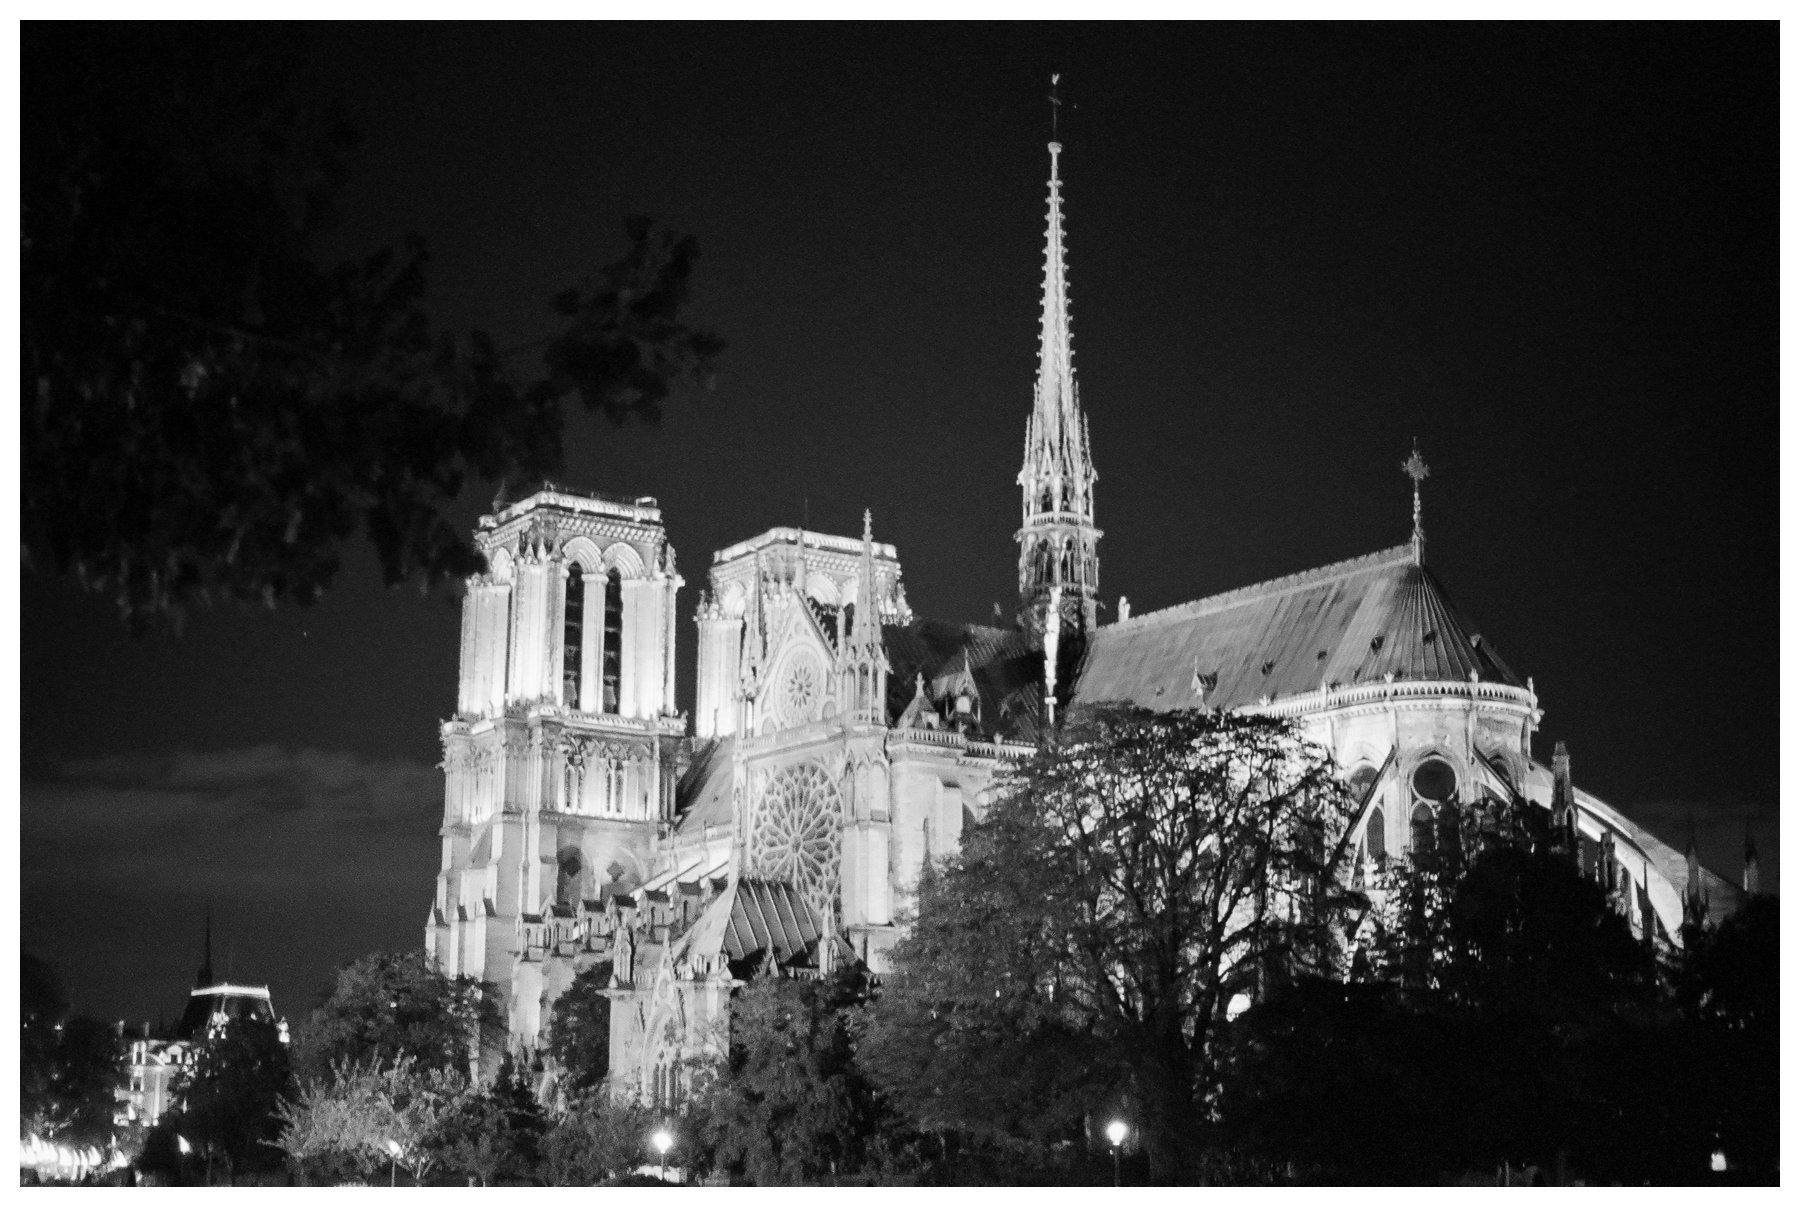 fine art travel photography by Booth Photographics of the Notre Dame Cathedral in Paris, France